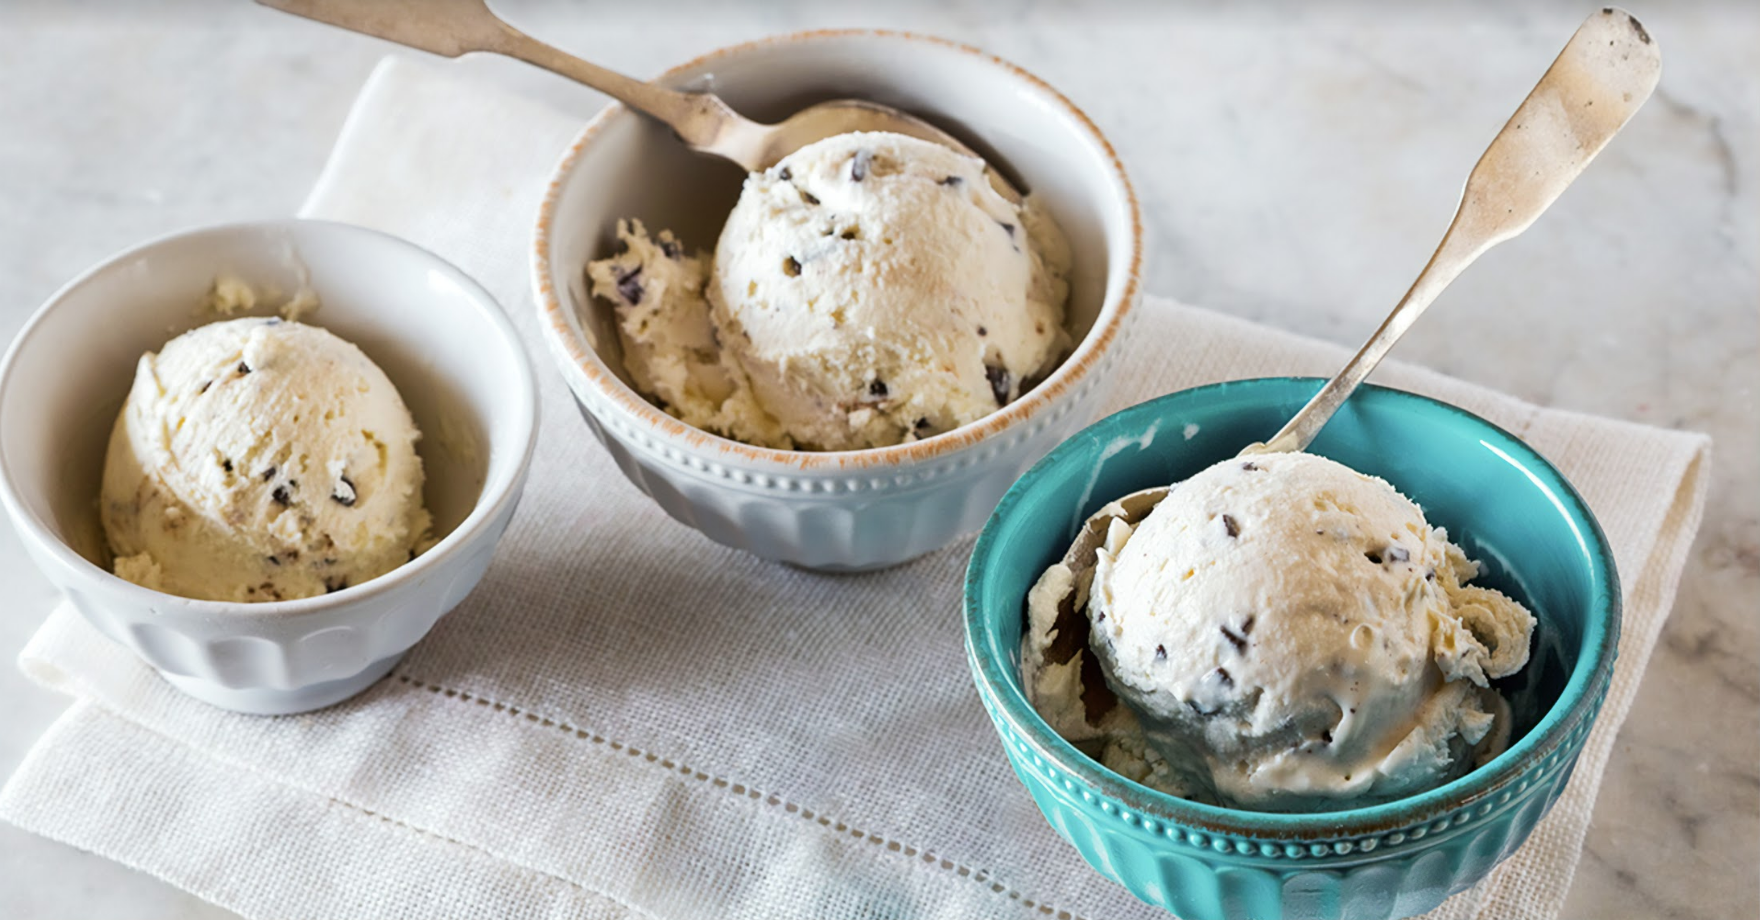 Virtual Ice Cream Social - Virtual Event Ideas From EventSprout